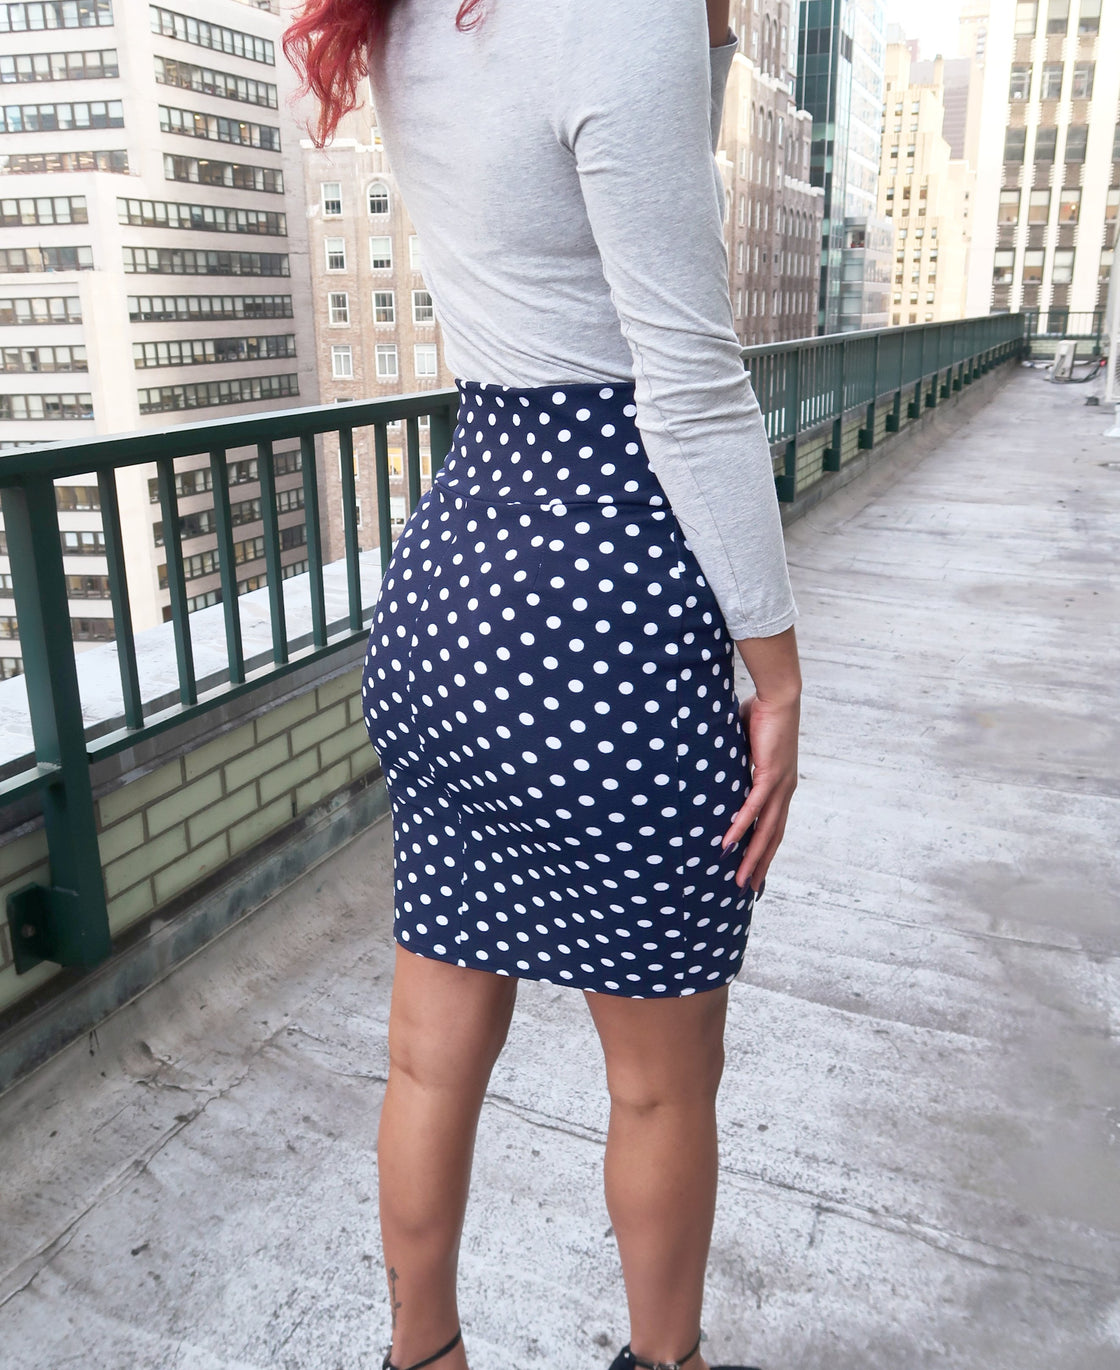 Midi Bodycon Pencil Skirt in Navy White Polka Dot